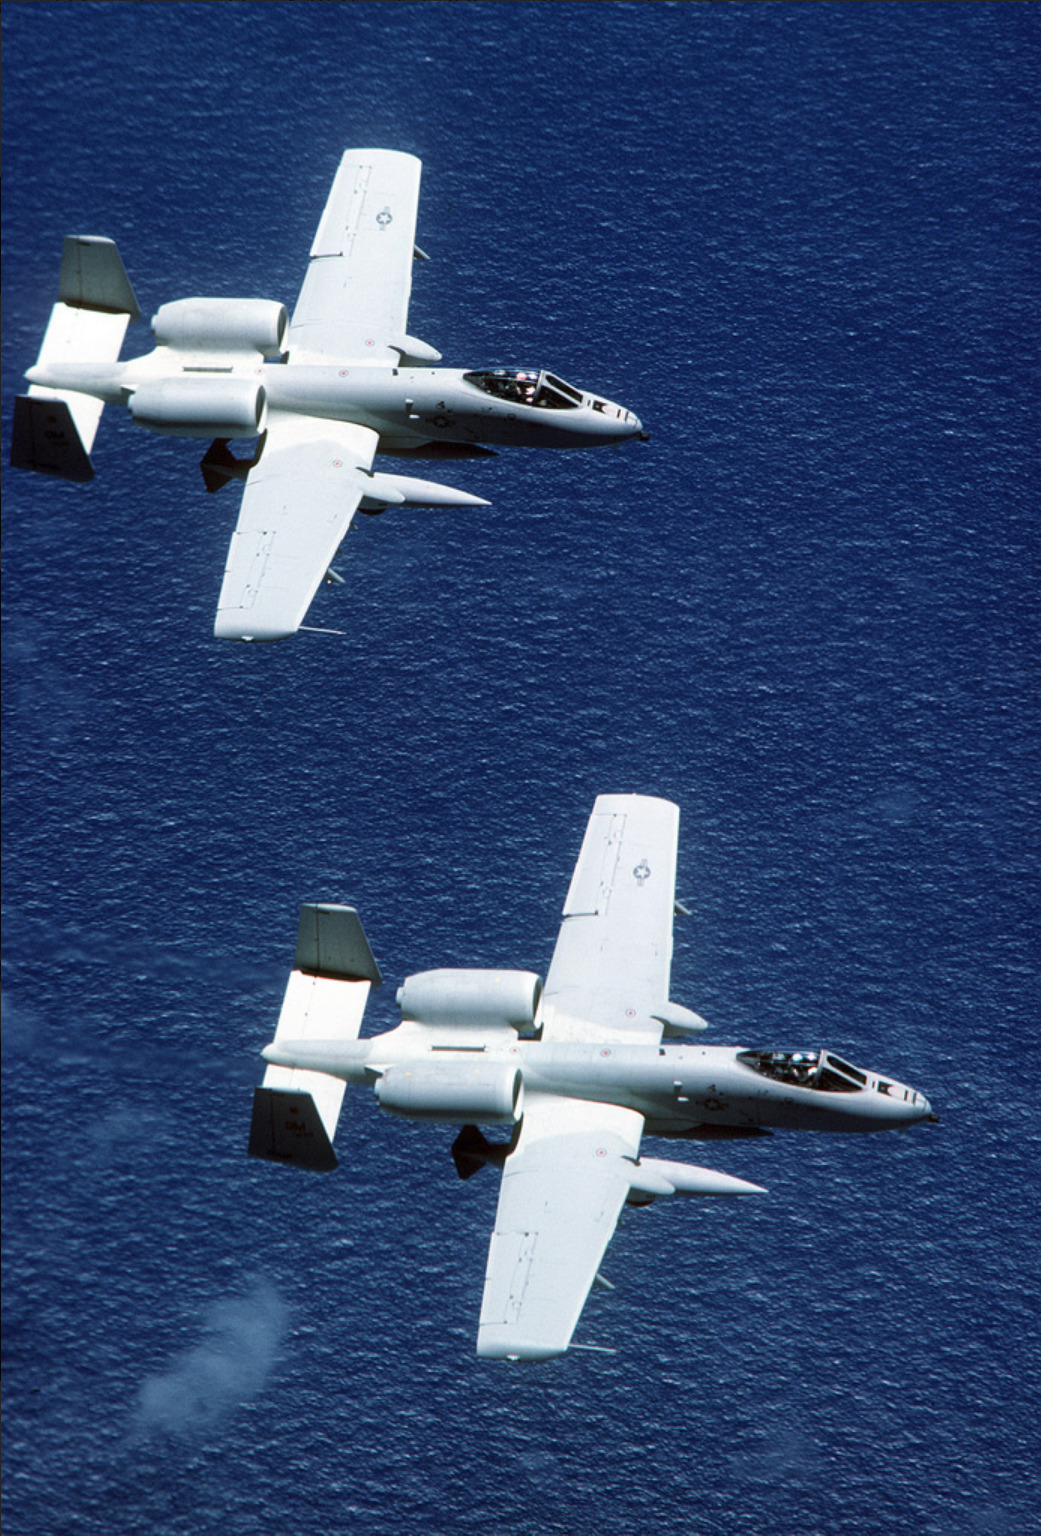 air-to-air_right_topside_view_of_two_a-10_thunderbolt_ii_aircraft.jpg